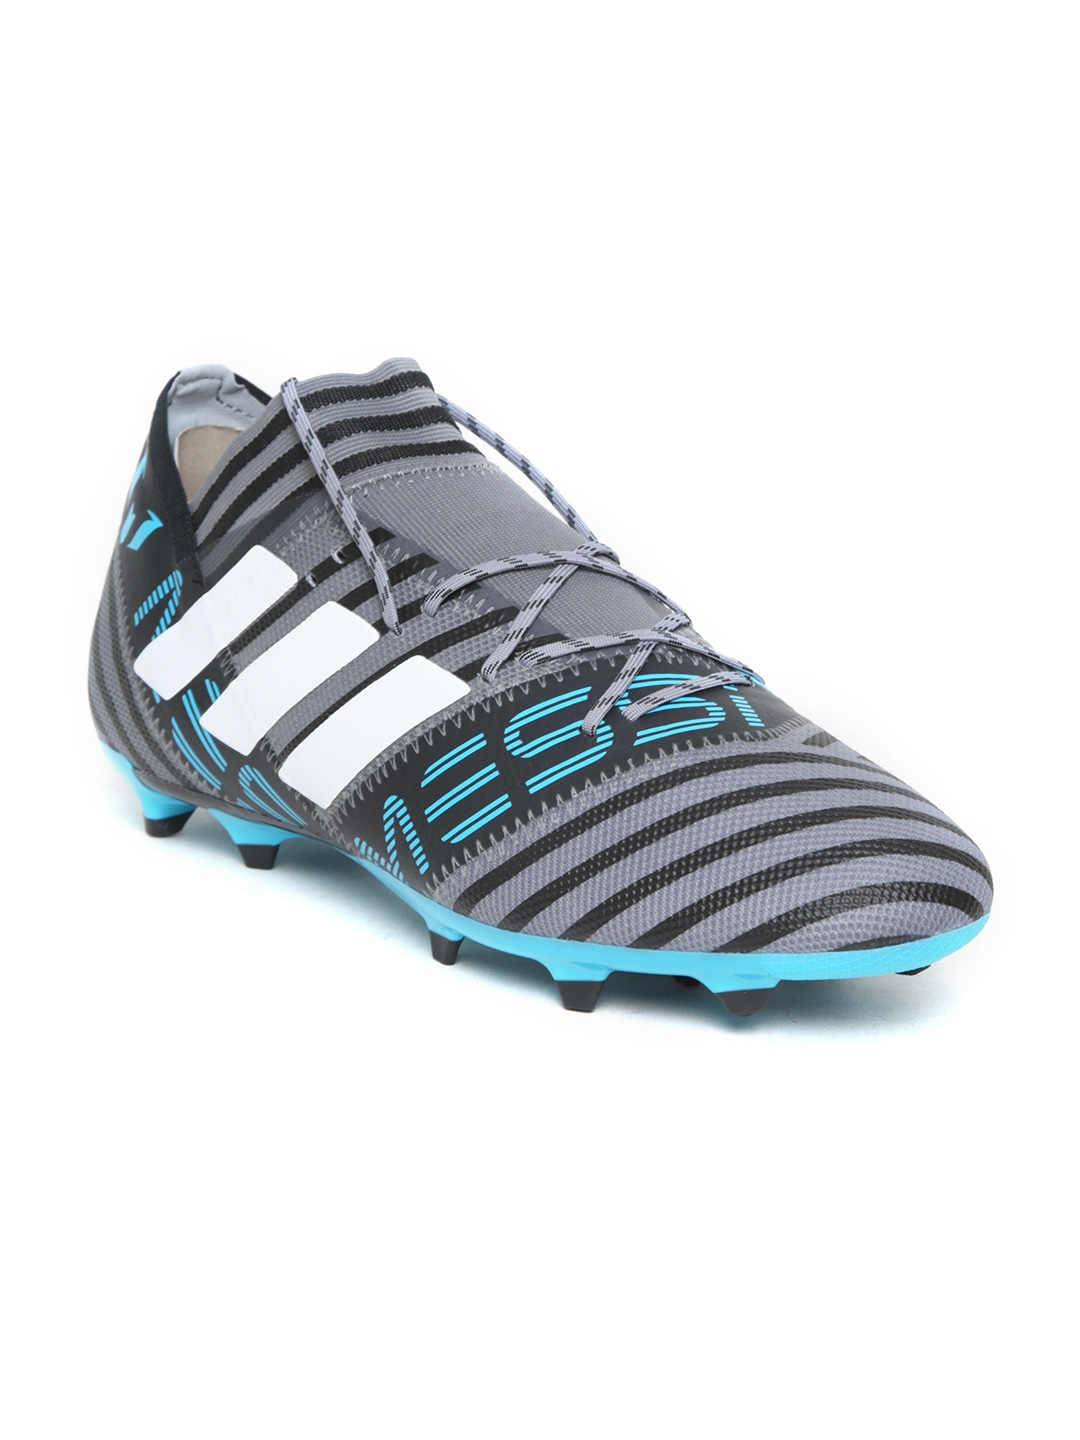 Buy ADIDAS Men Grey   Black Nemeziz Messi 17.2 FG Football Shoes ... 0db163e09